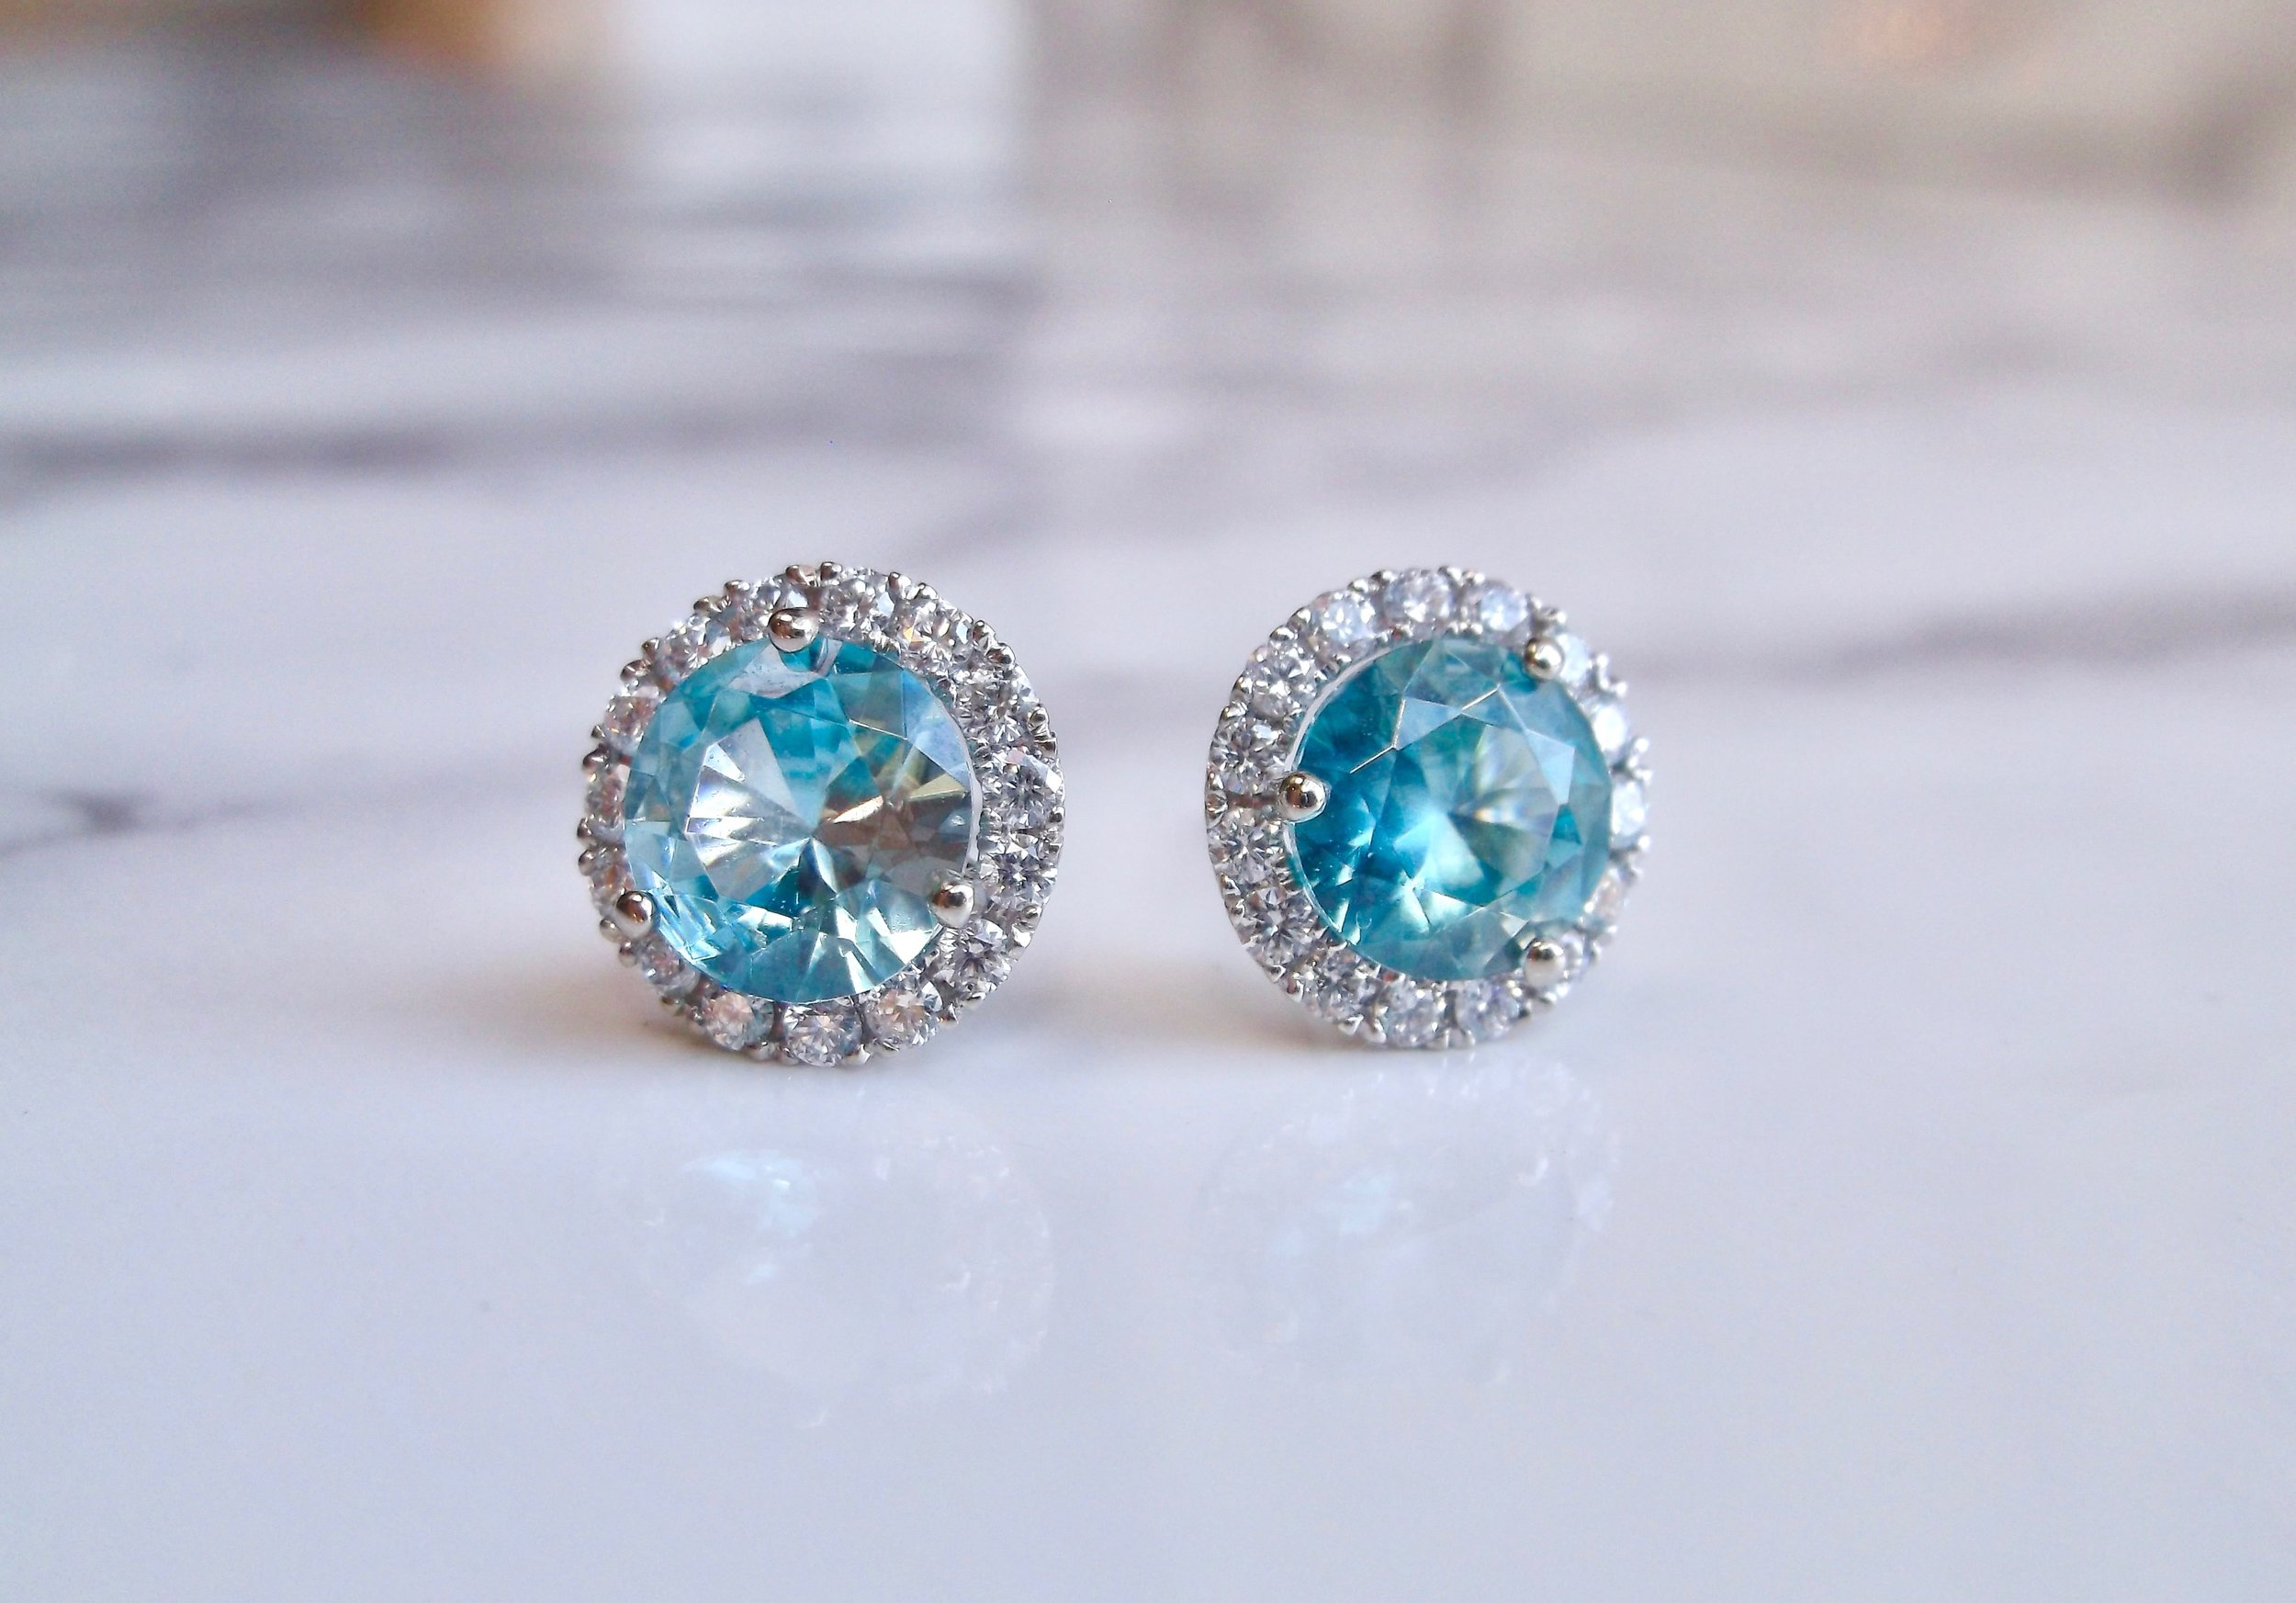 Tell me about it, stud. Shop these stud-ly blue zircon and diamond beauties  HERE.